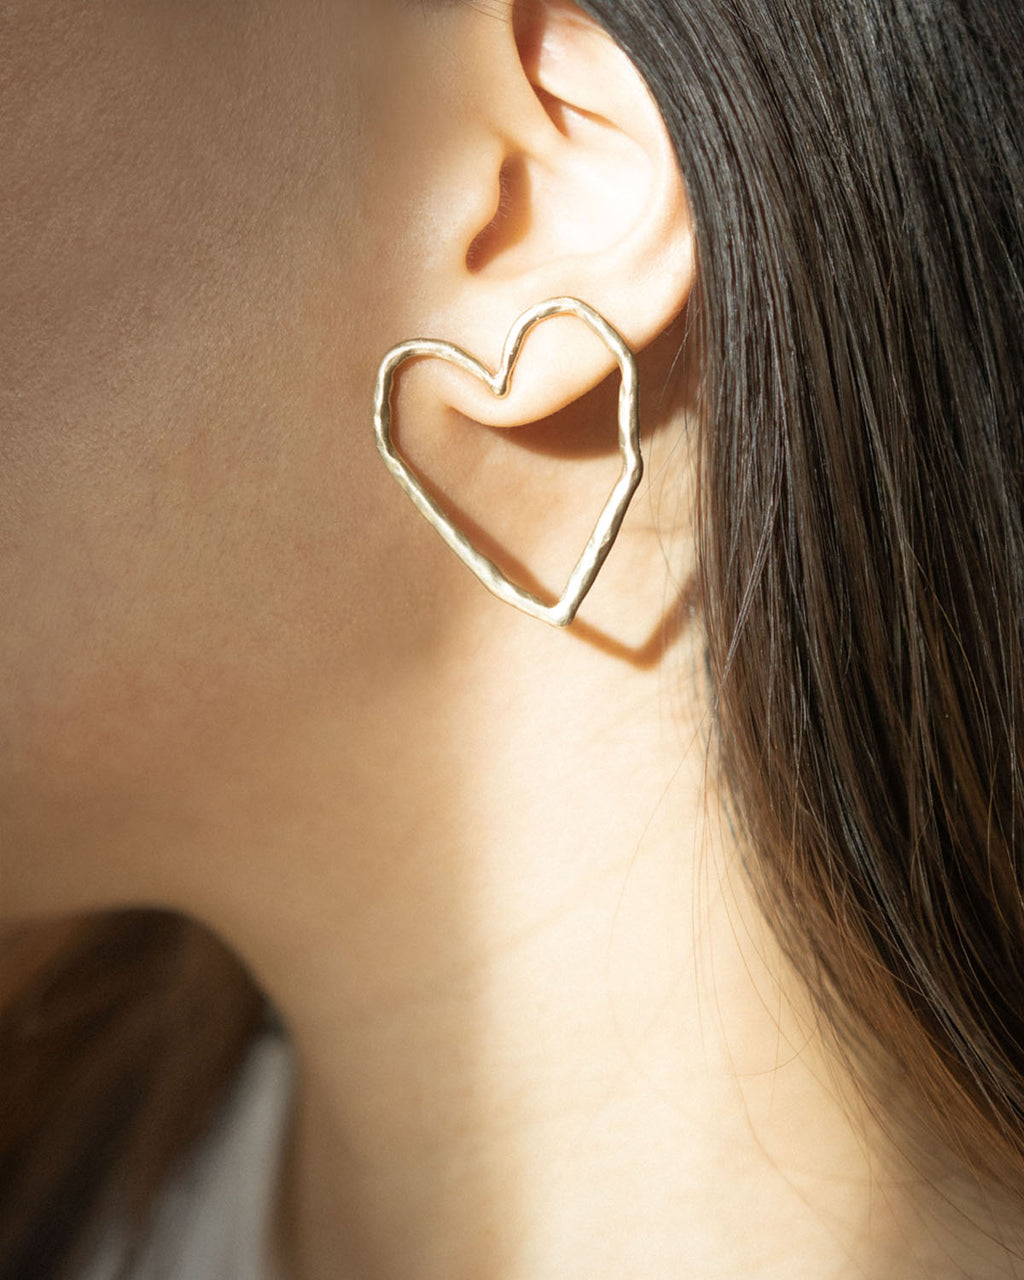 Hollow heart shape drawing ear studs @thehexad